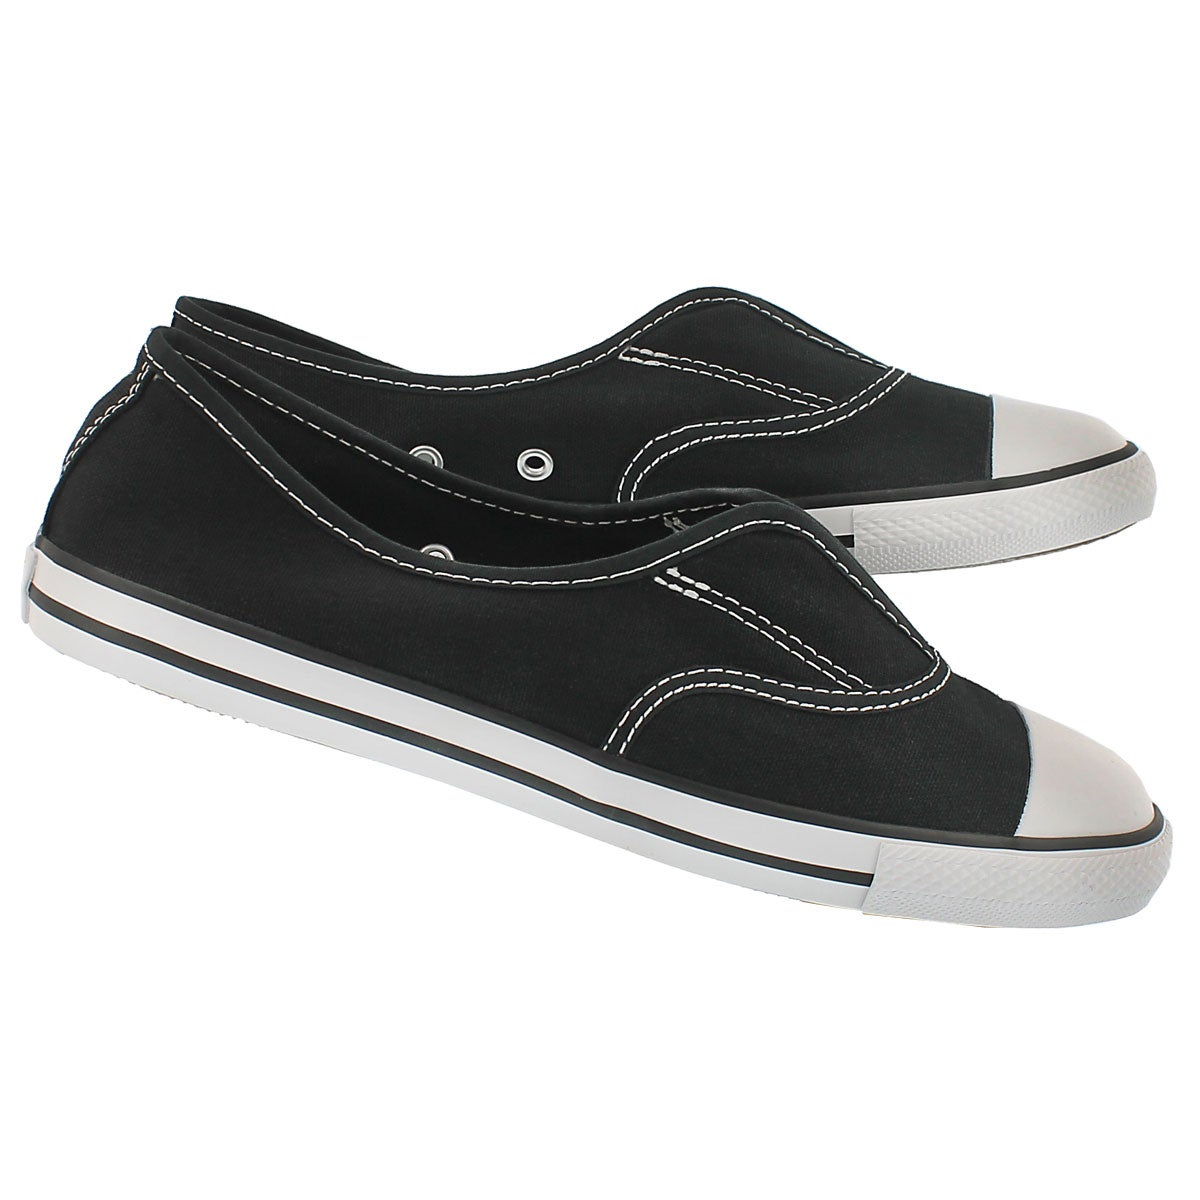 Lds CT AllStar Cove Canvas black slip on